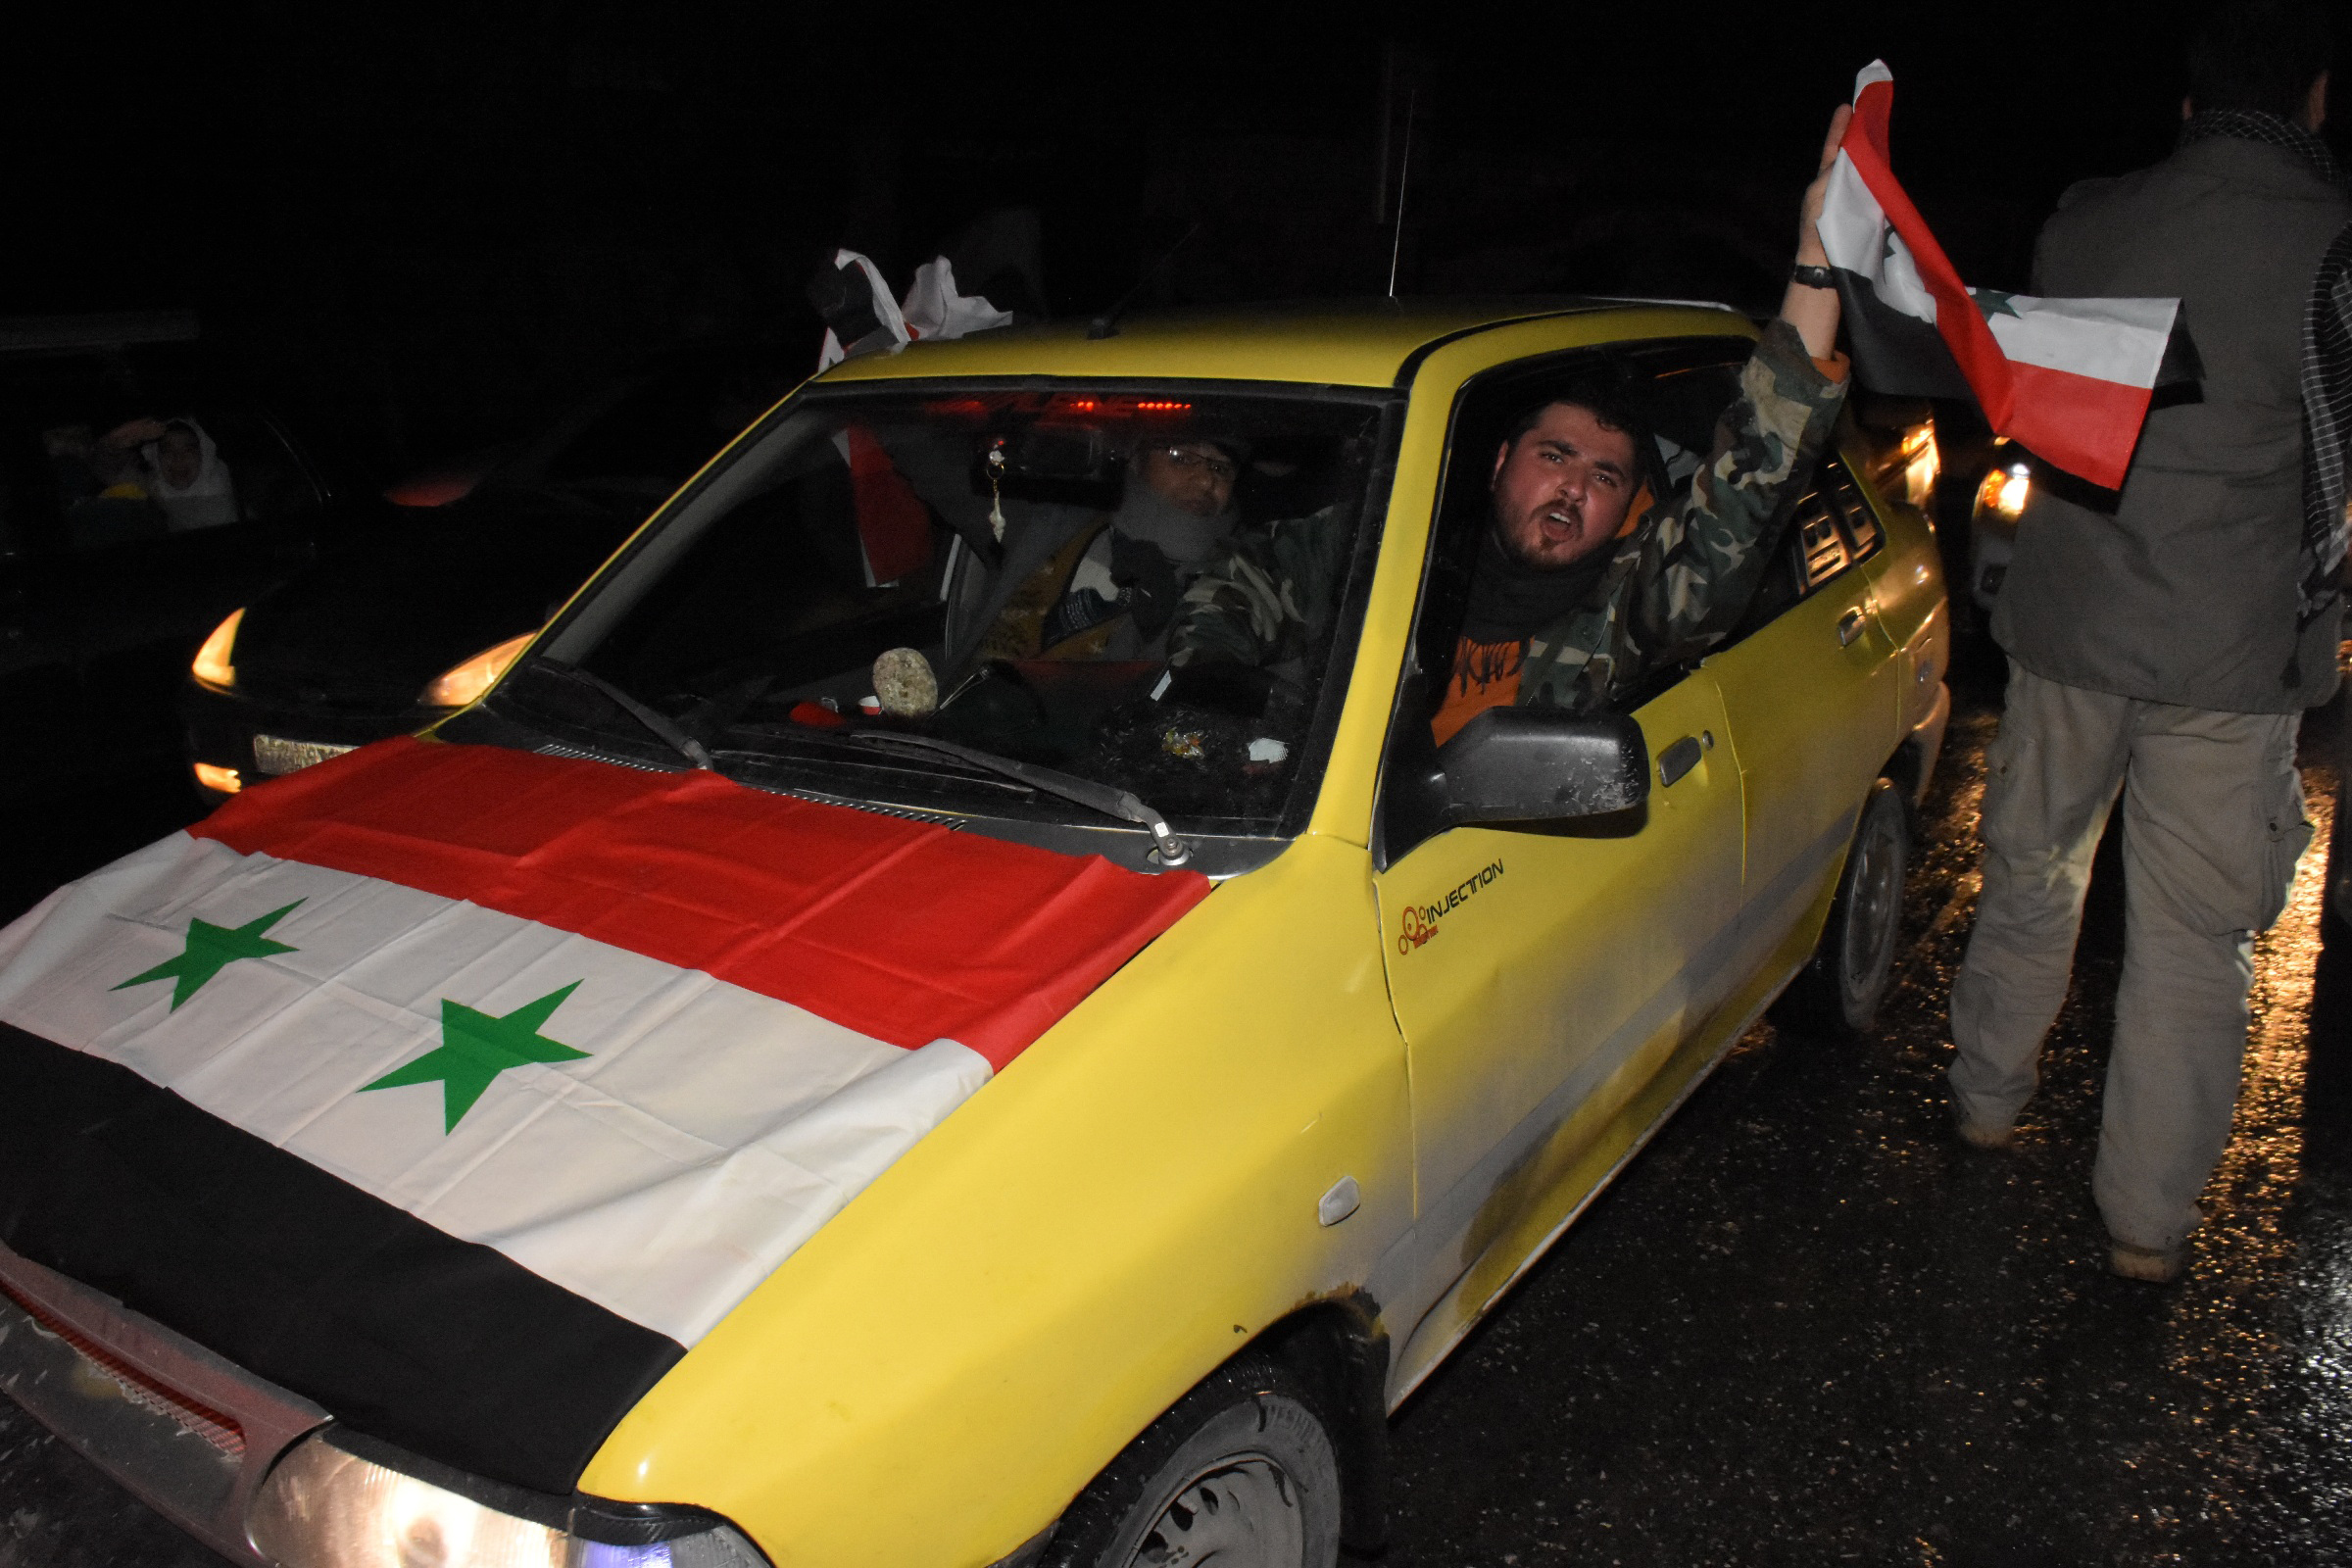 A Syrian driver flies a national flag as people celebrate in the streets on December 22, 2016 in the northern Syrian city of Aleppo, after the army said it regained full control of the country's second city.